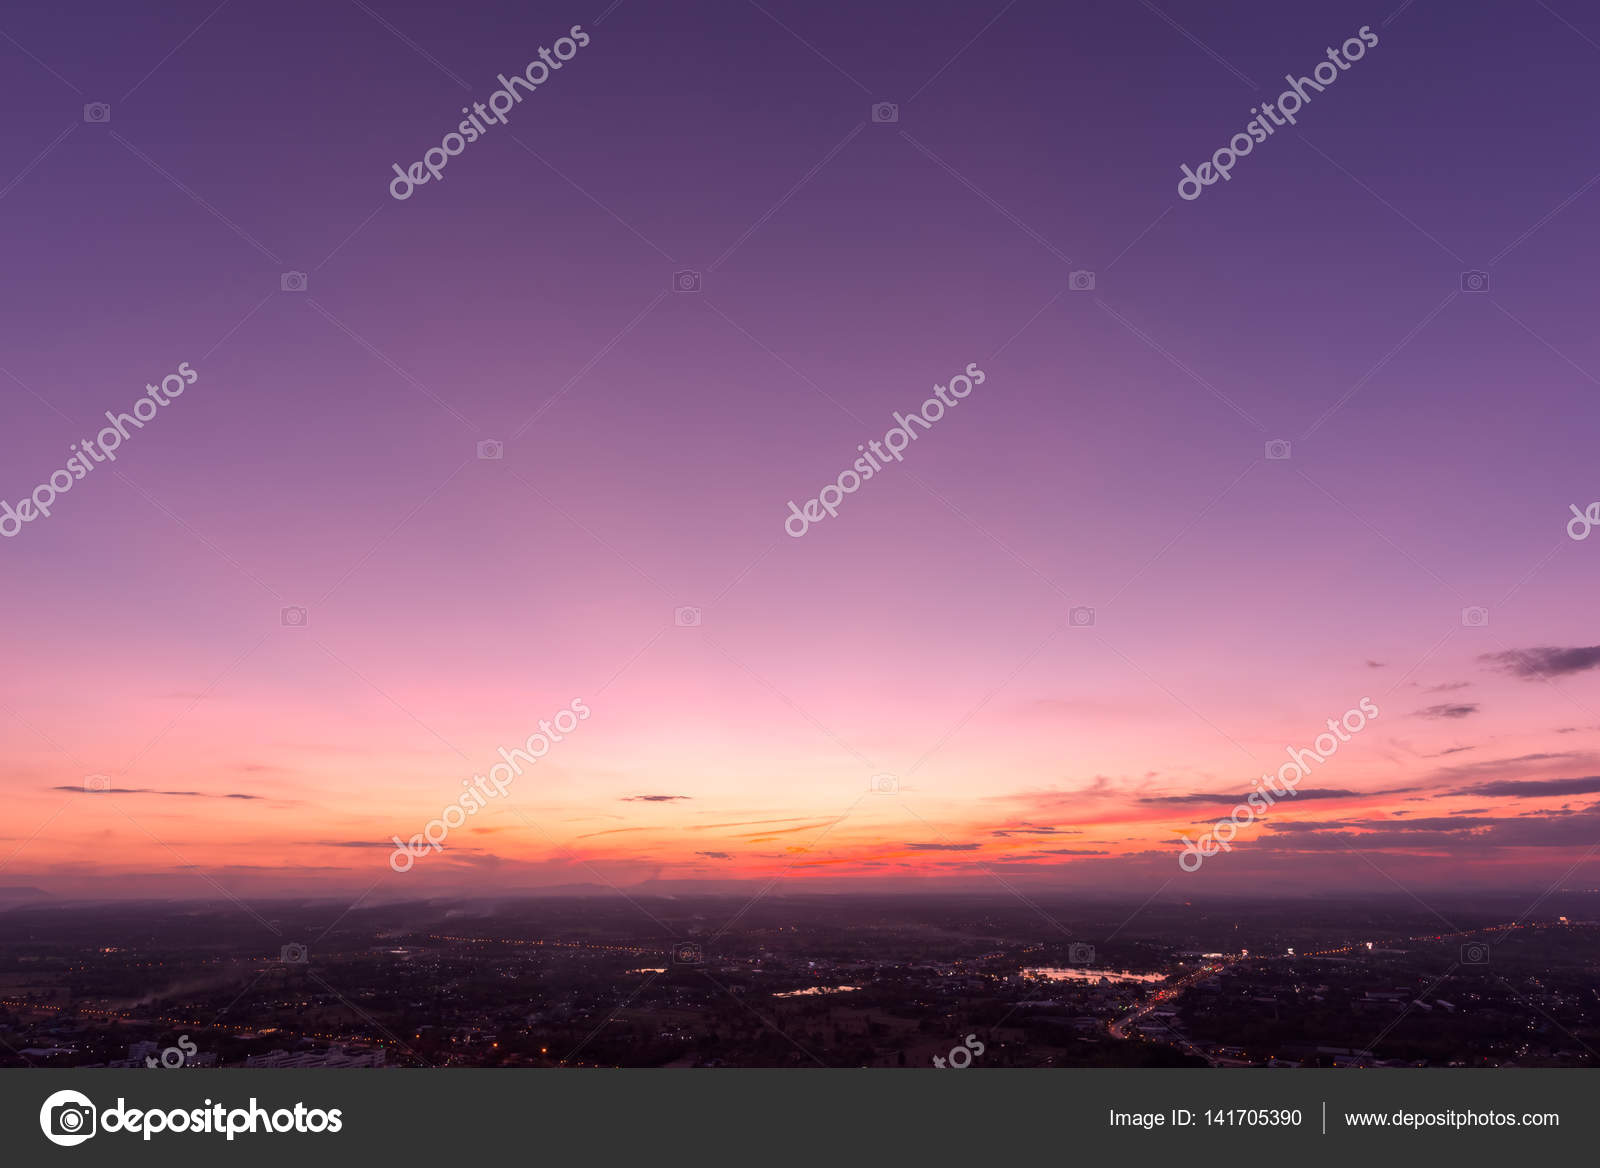 Beautiful Sunset On City With The Colors Of Rose Quartz And Serenity